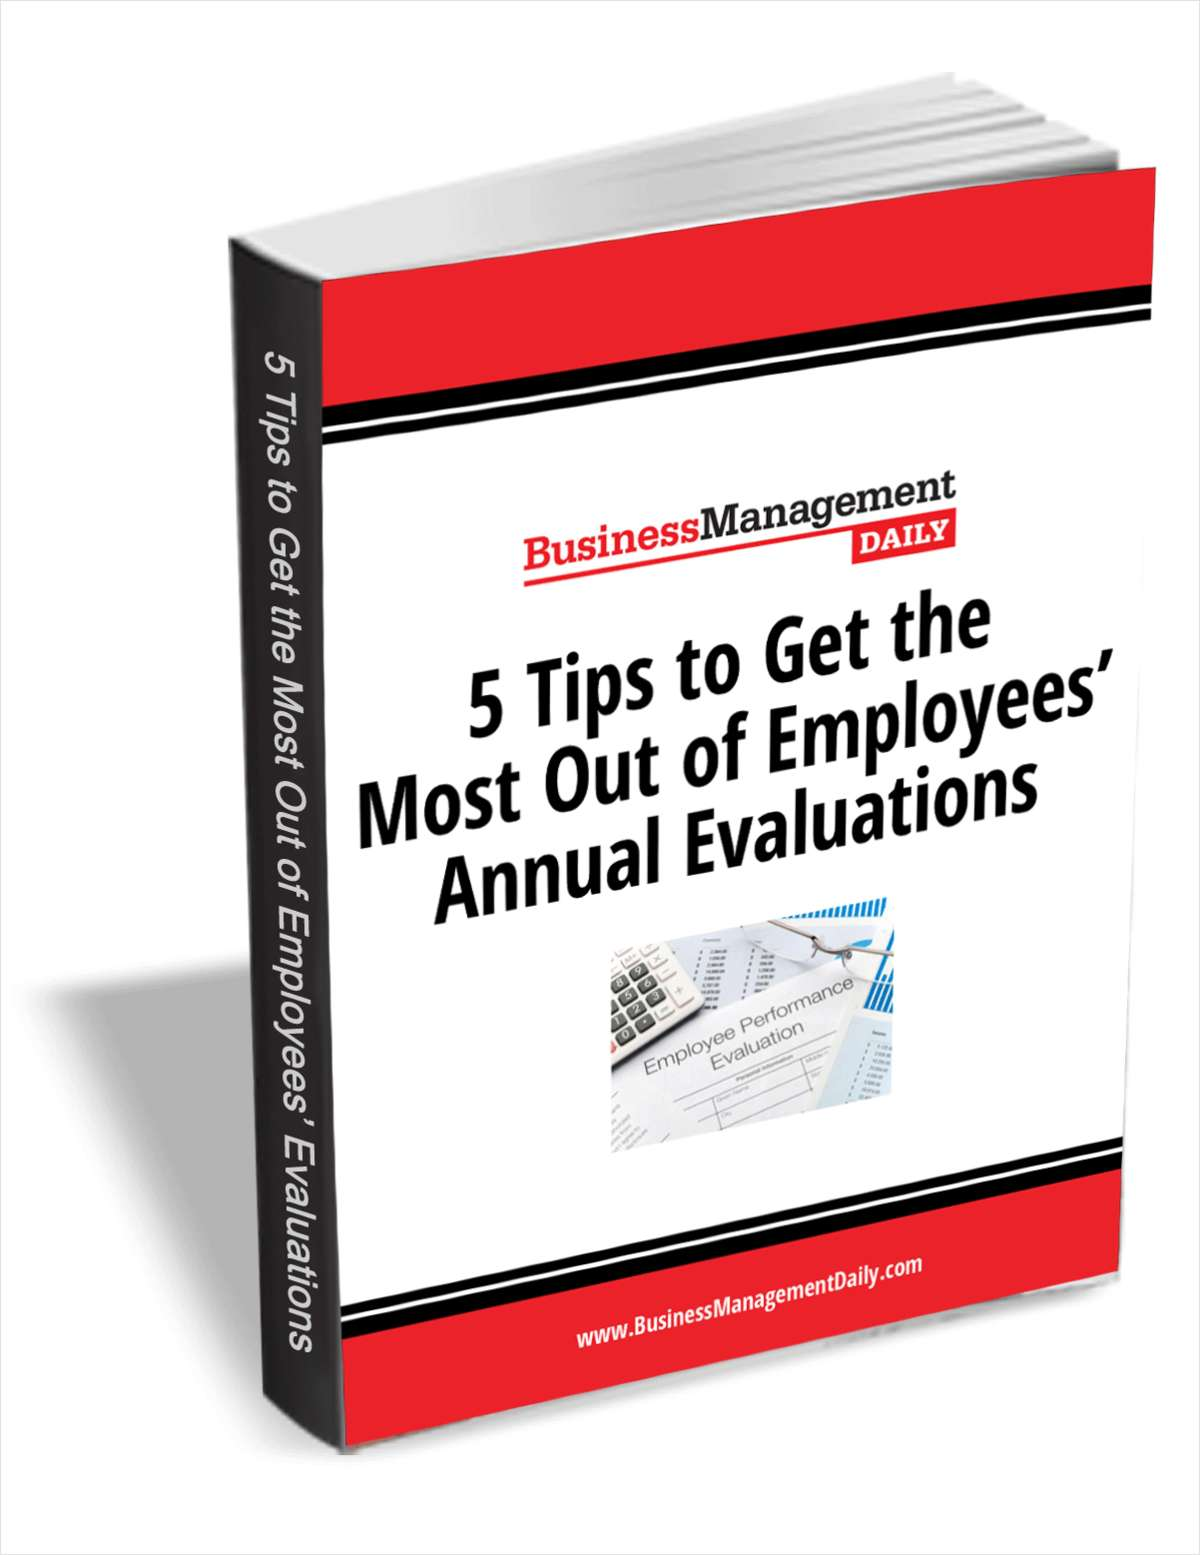 5 Tips to Get the Most Out of Employees' Annual Evaluations    Make the most out of employee evaluations this year and every year. Learn More >